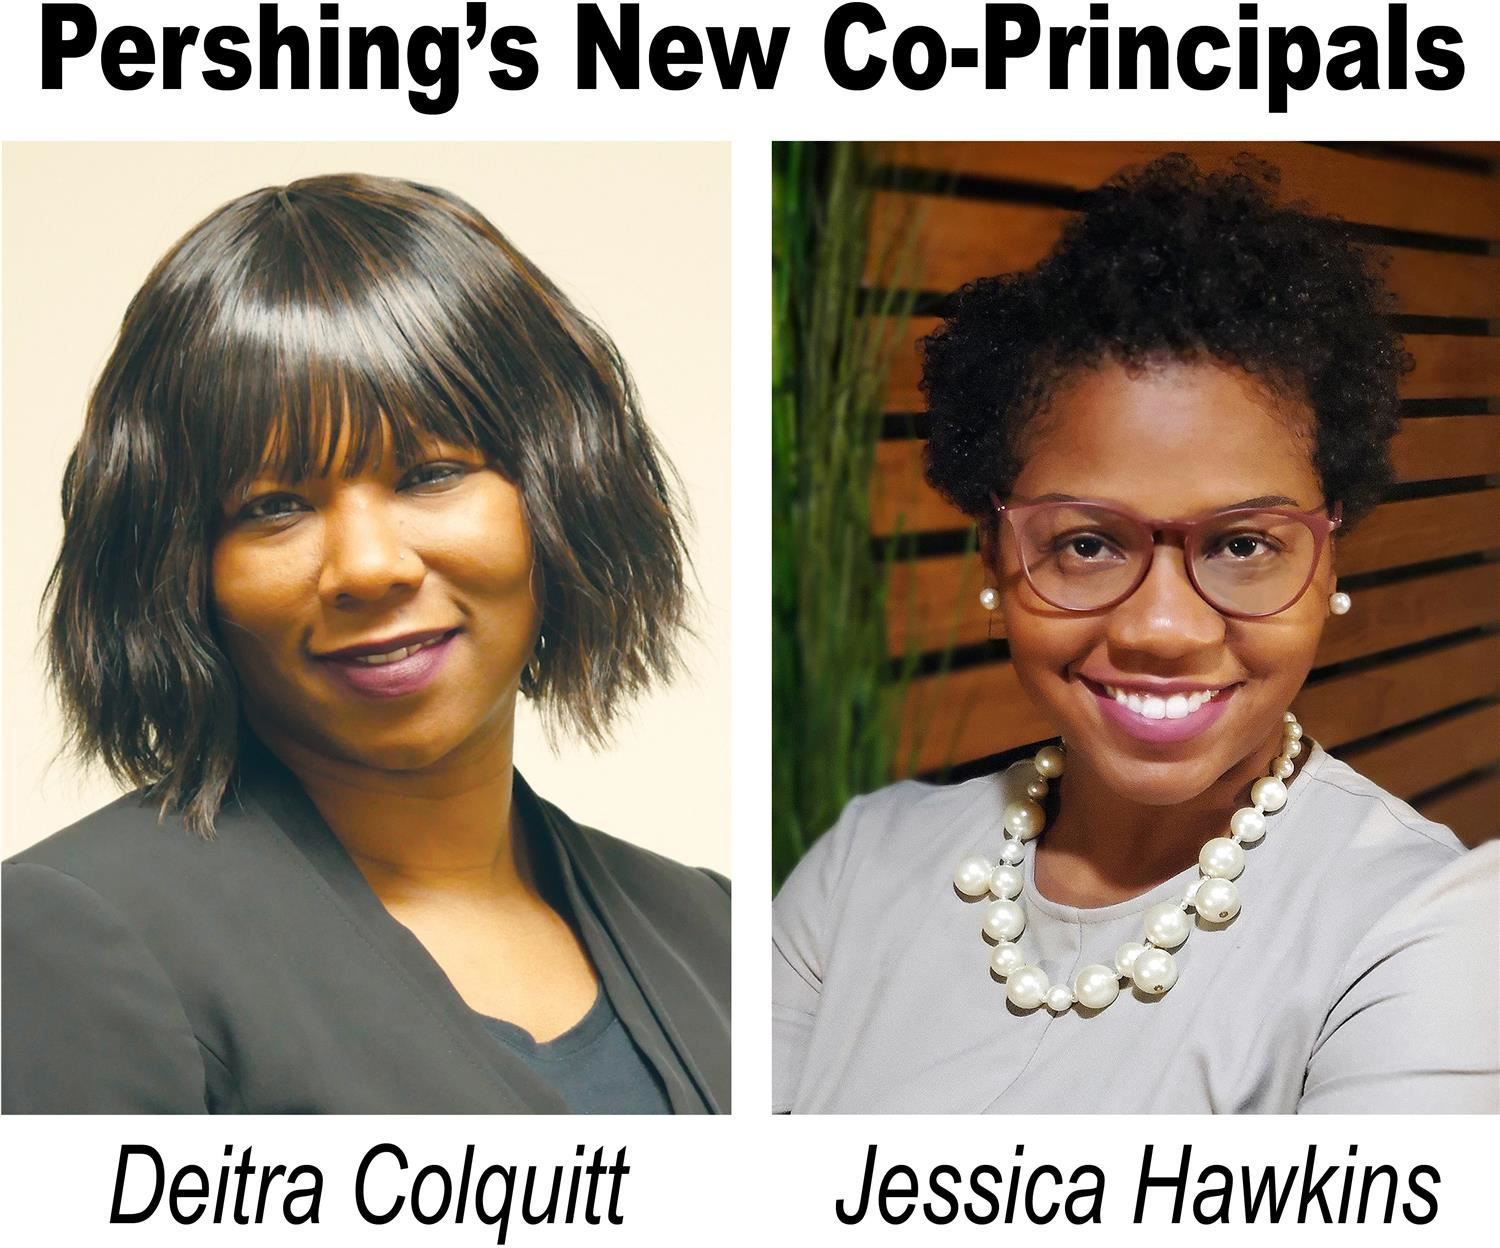 Colquitt and Hawkins Named Co-Principals of Pershing Elementary